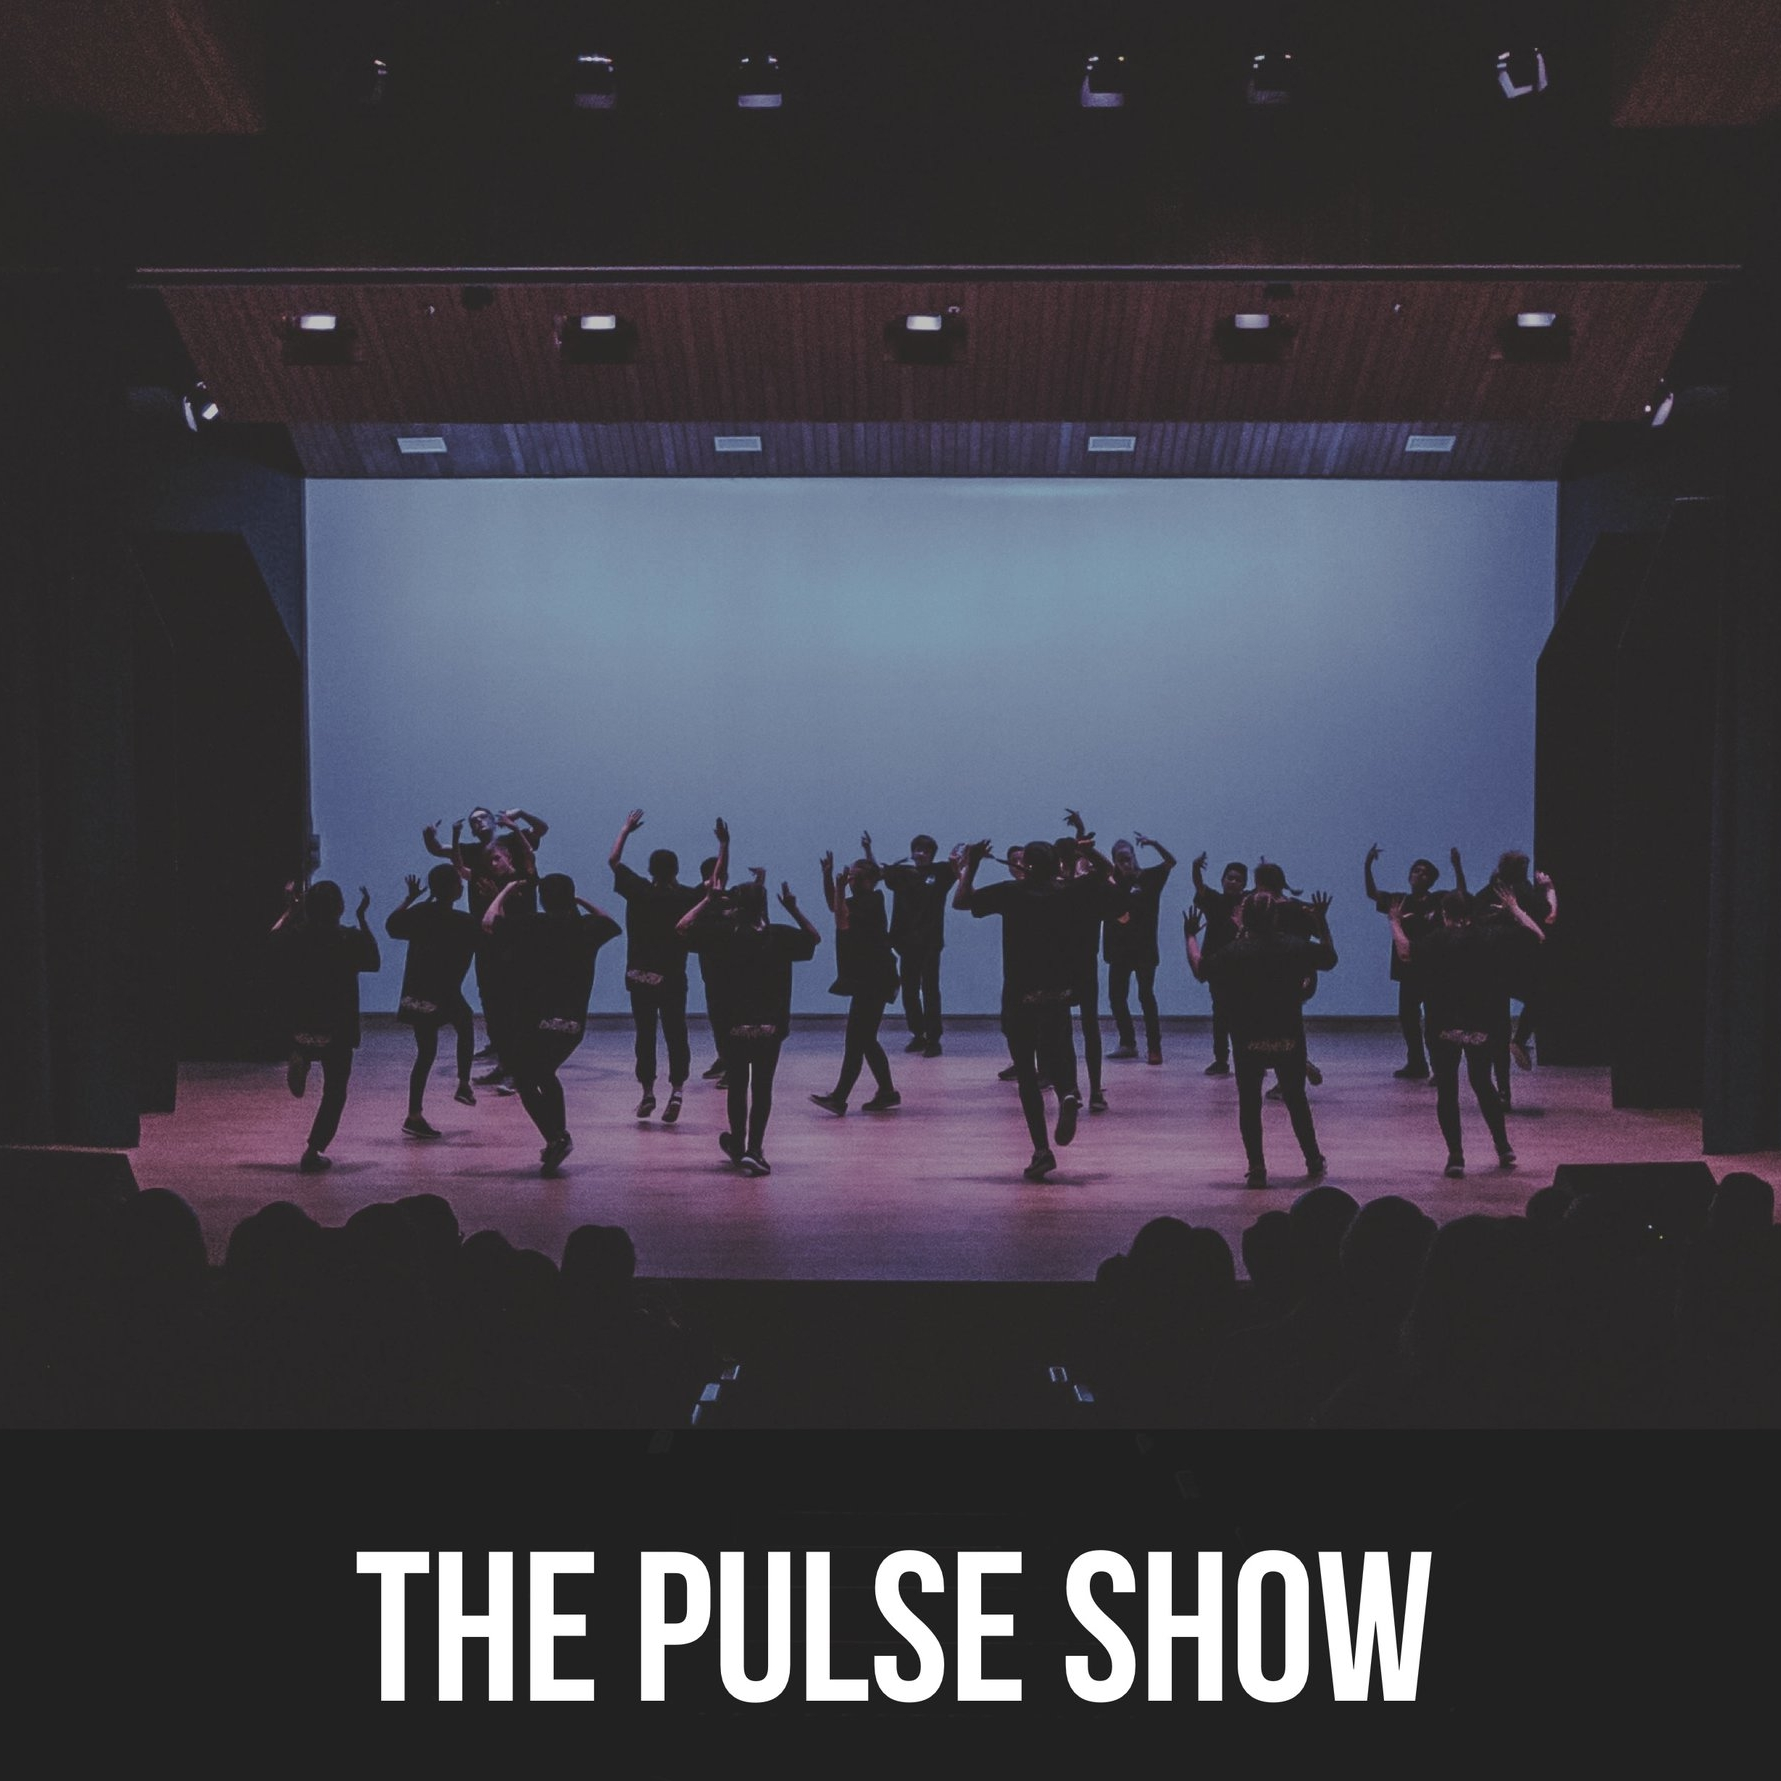 June 14, 15 & 17: The Pulse Show